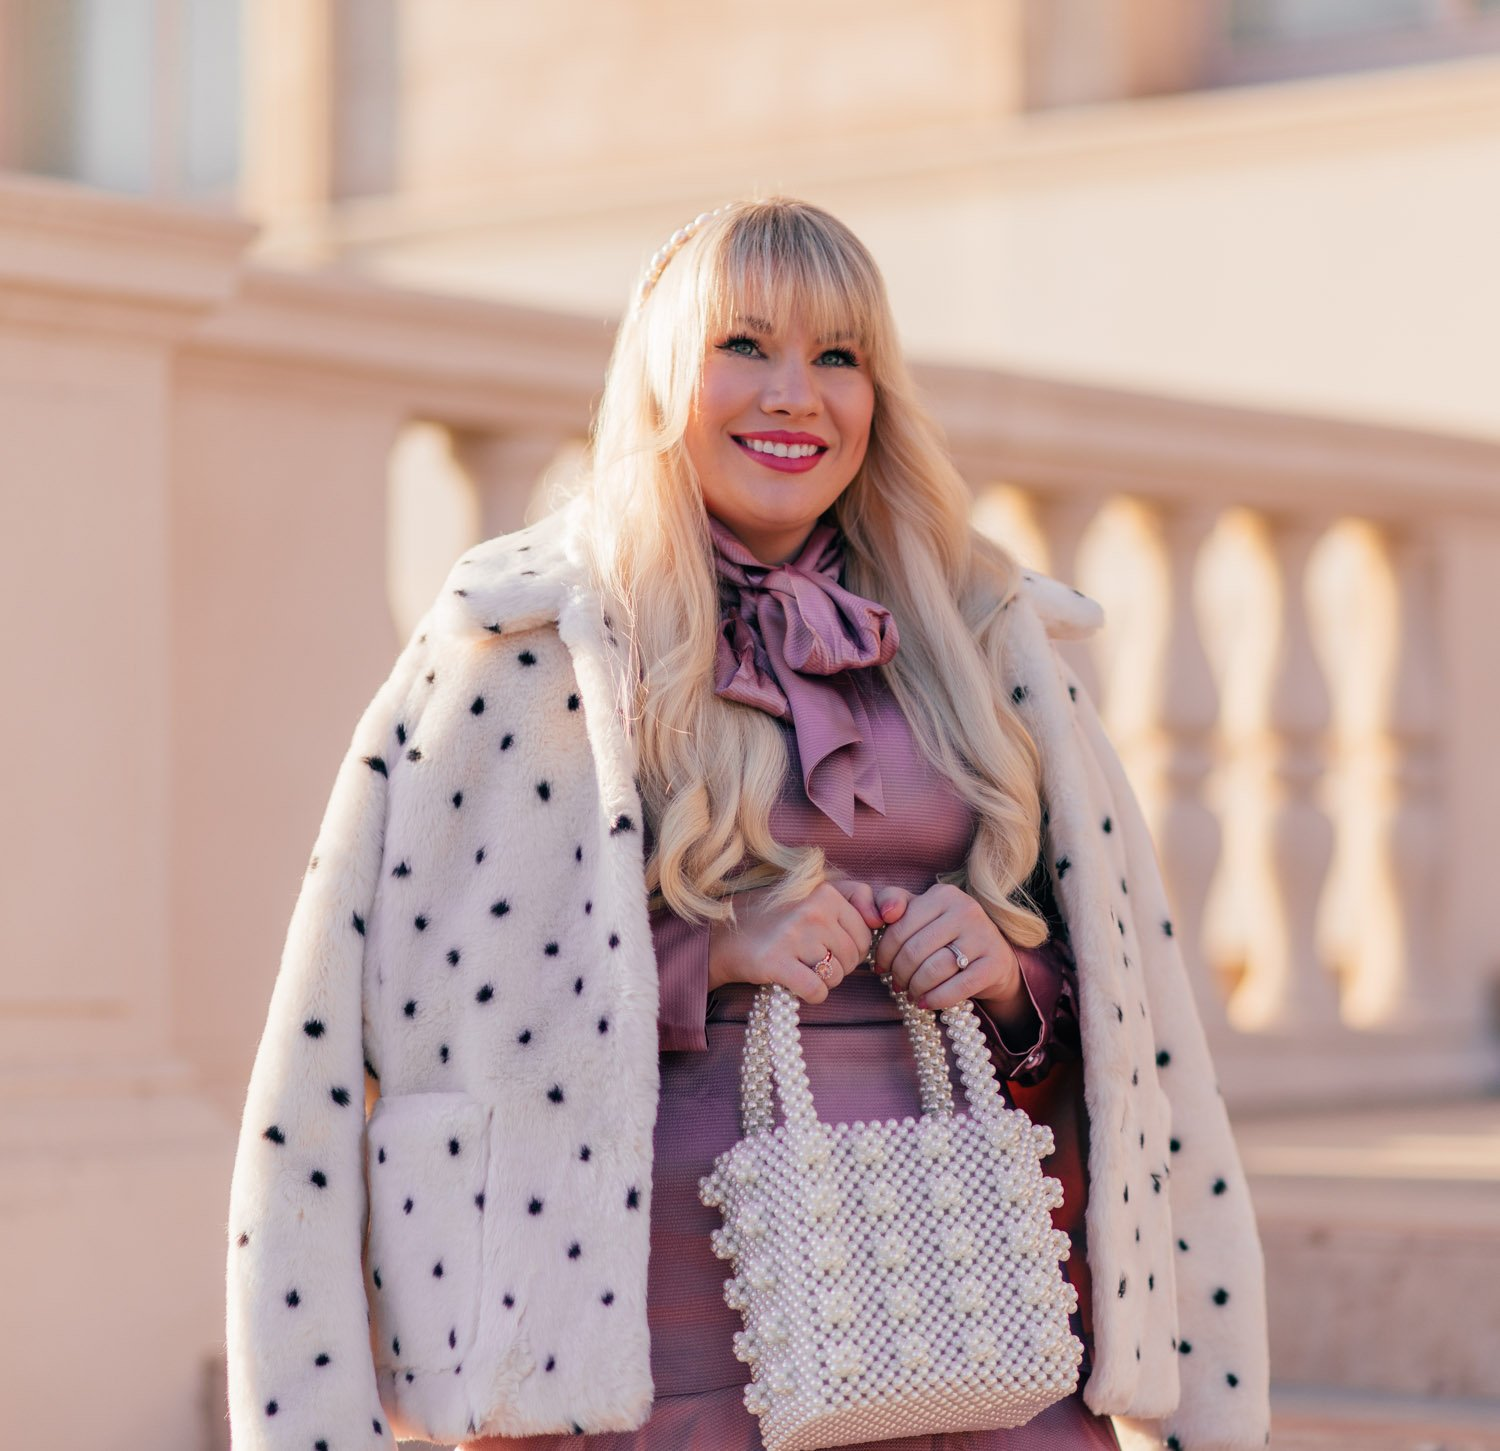 Elizabeth Hugen of Lizzie in Lace wears a glamorous leopard print coat for fall!